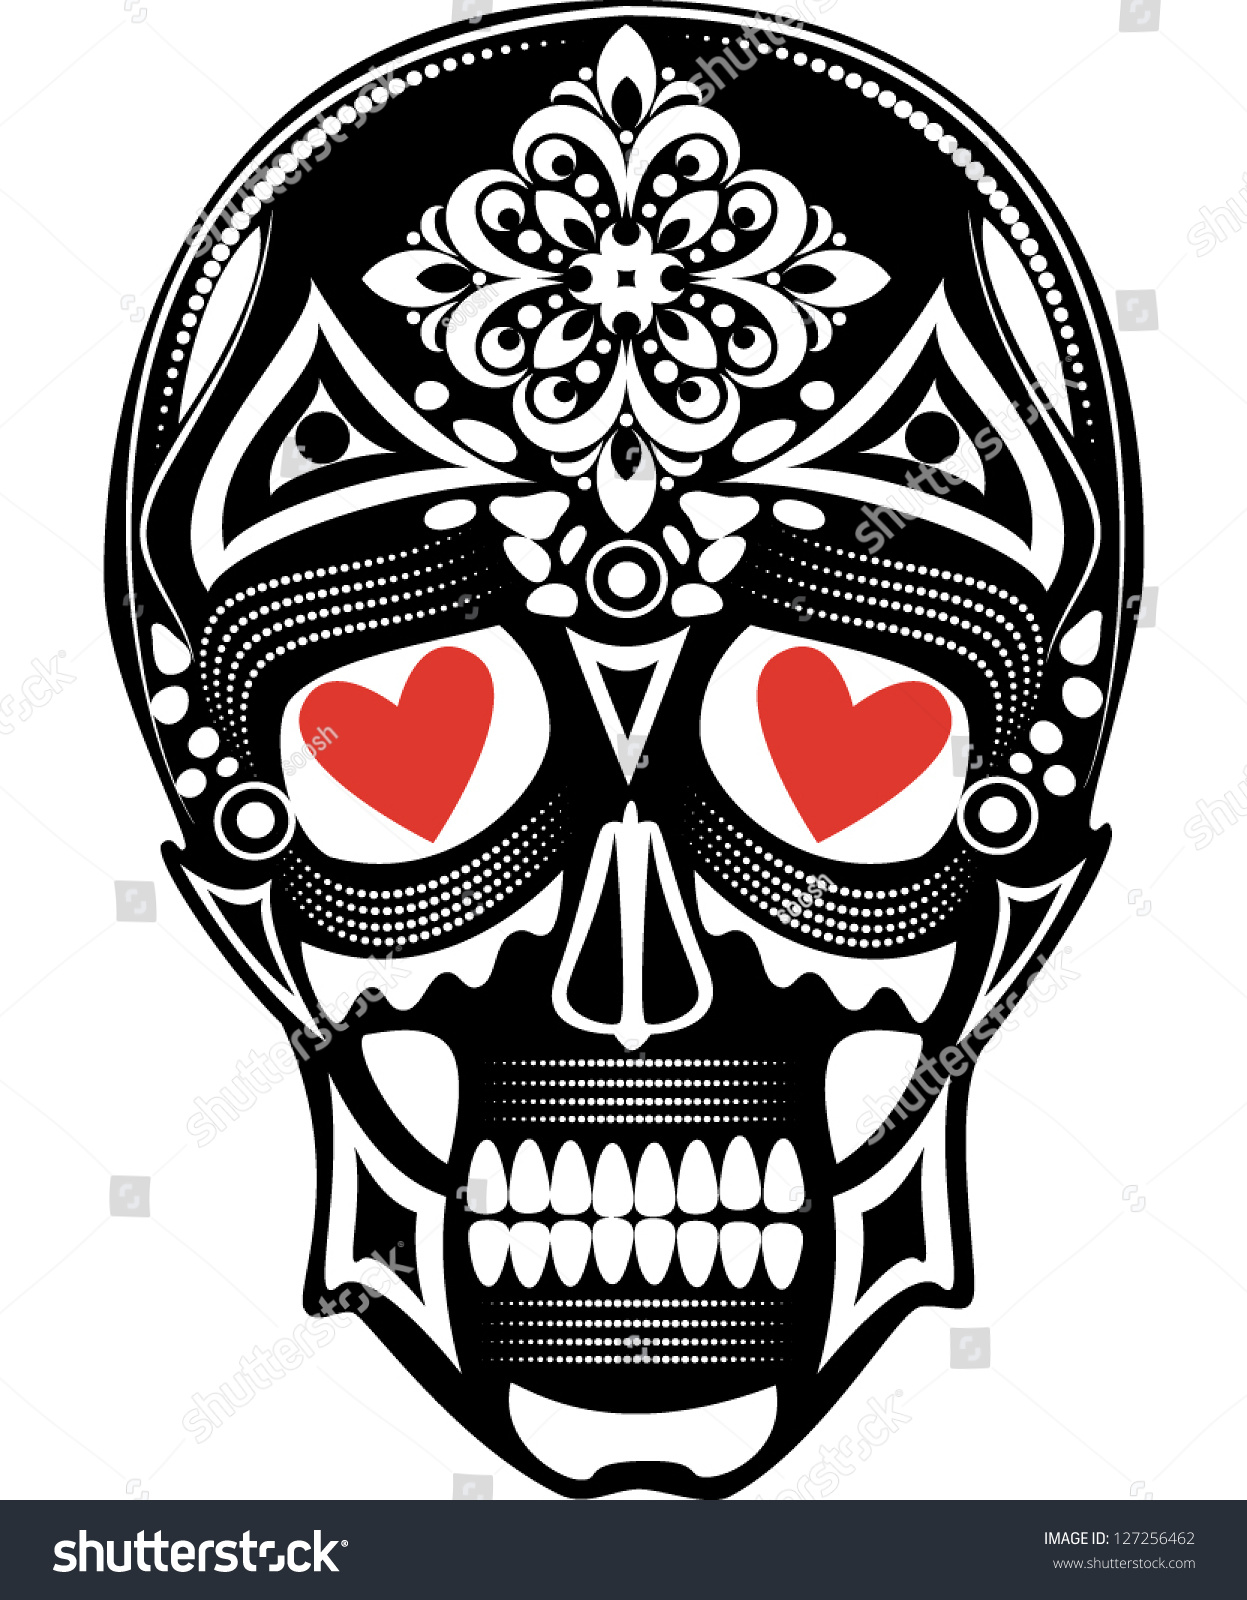 Vector Illustration Of A Skull Tattoo With Red Hearts In Its Eyes